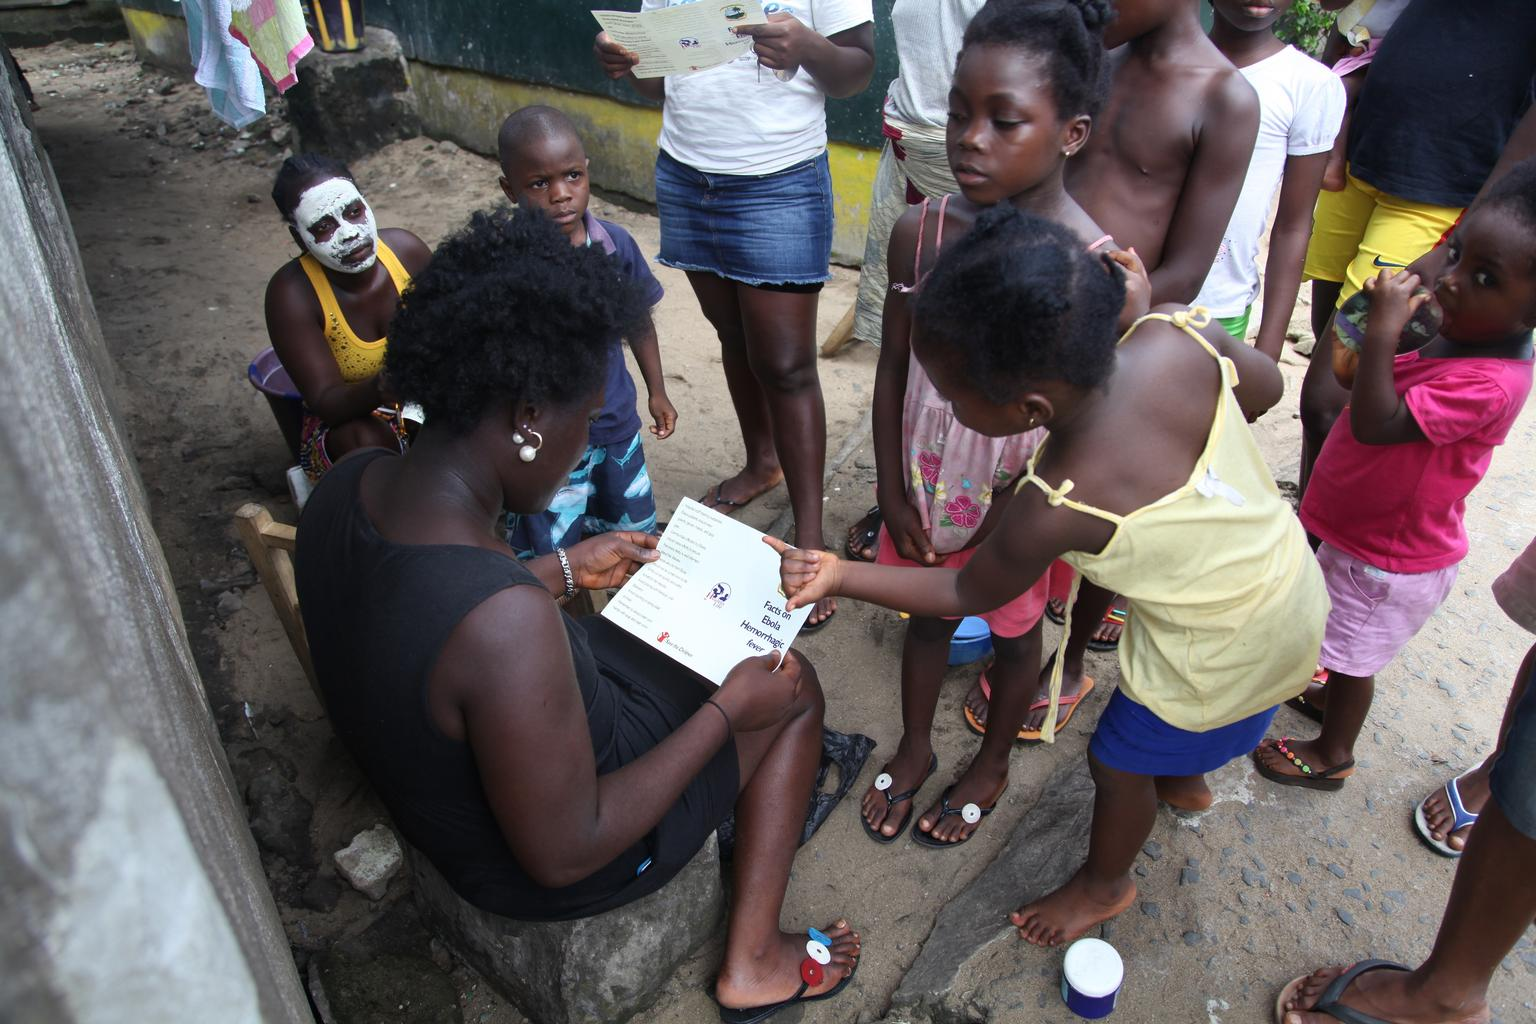 n June 2014 in Liberia, a woman reviews a brochure, distributed by UNICEF, bearing information on the symptoms of Ebola virus disease (EVD) and best practices to help prevent its spread, in New Kru Town, near Monrovia, the capital.